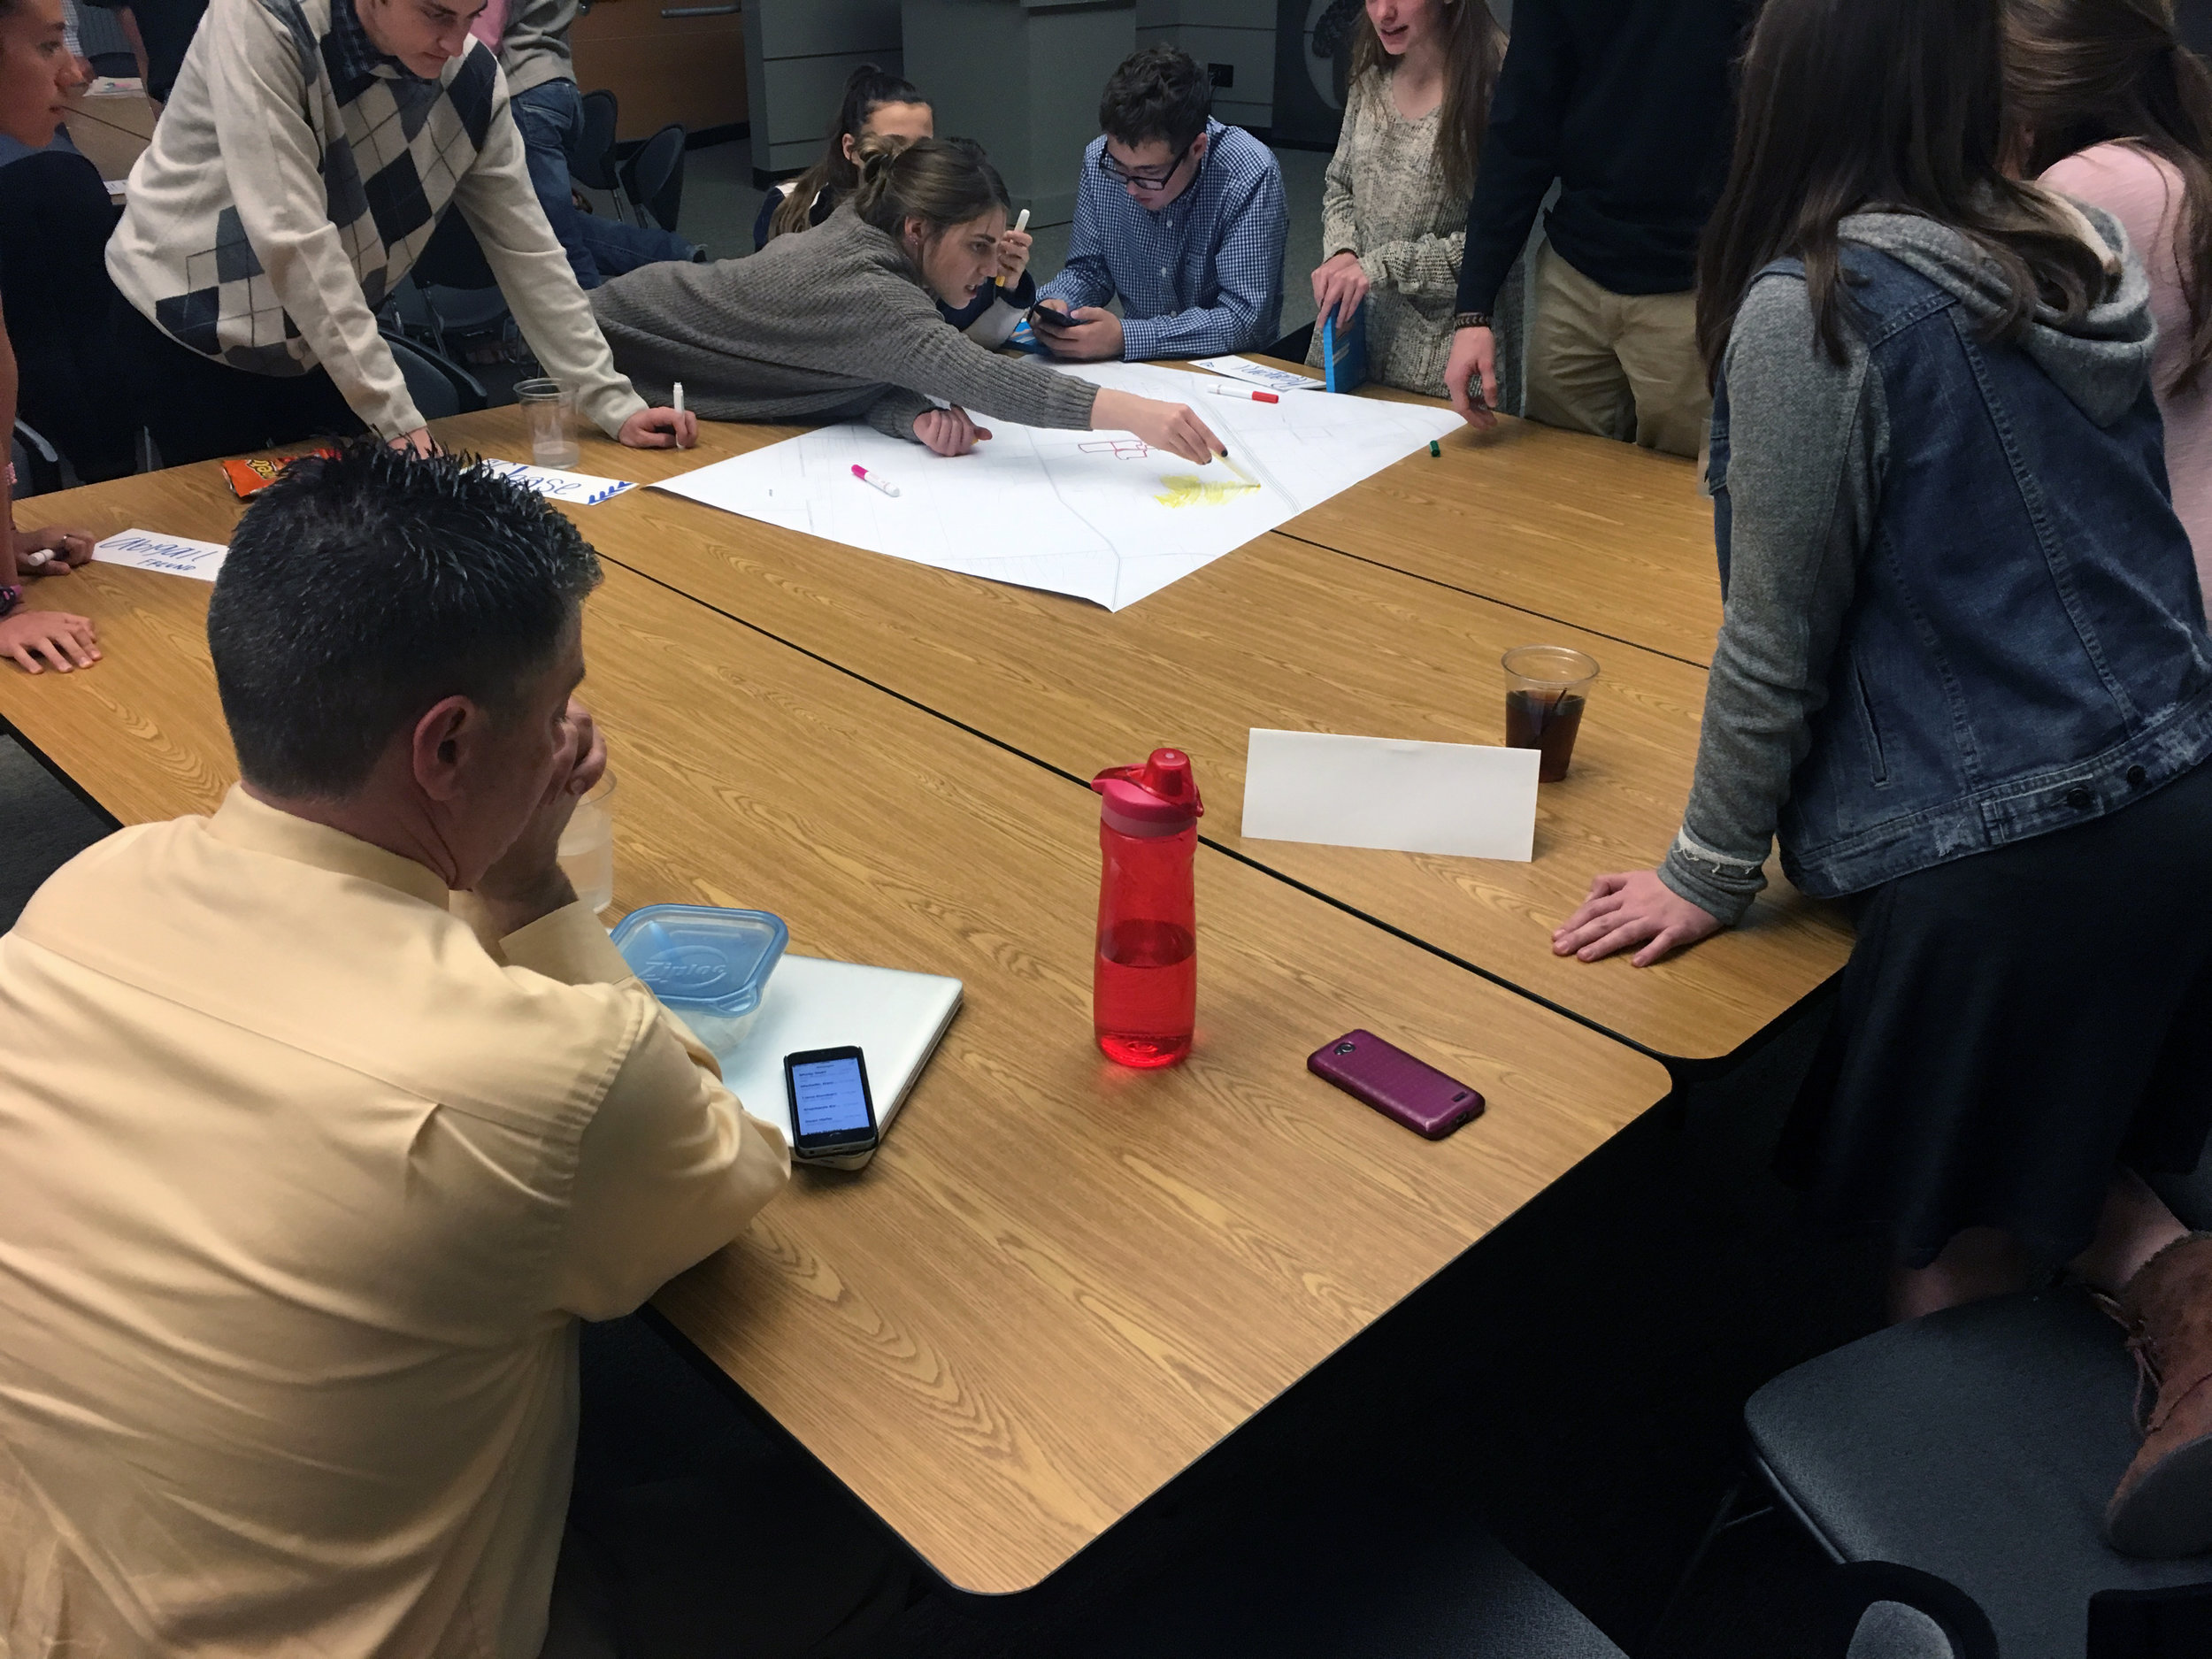 Teens worked together in small groups.